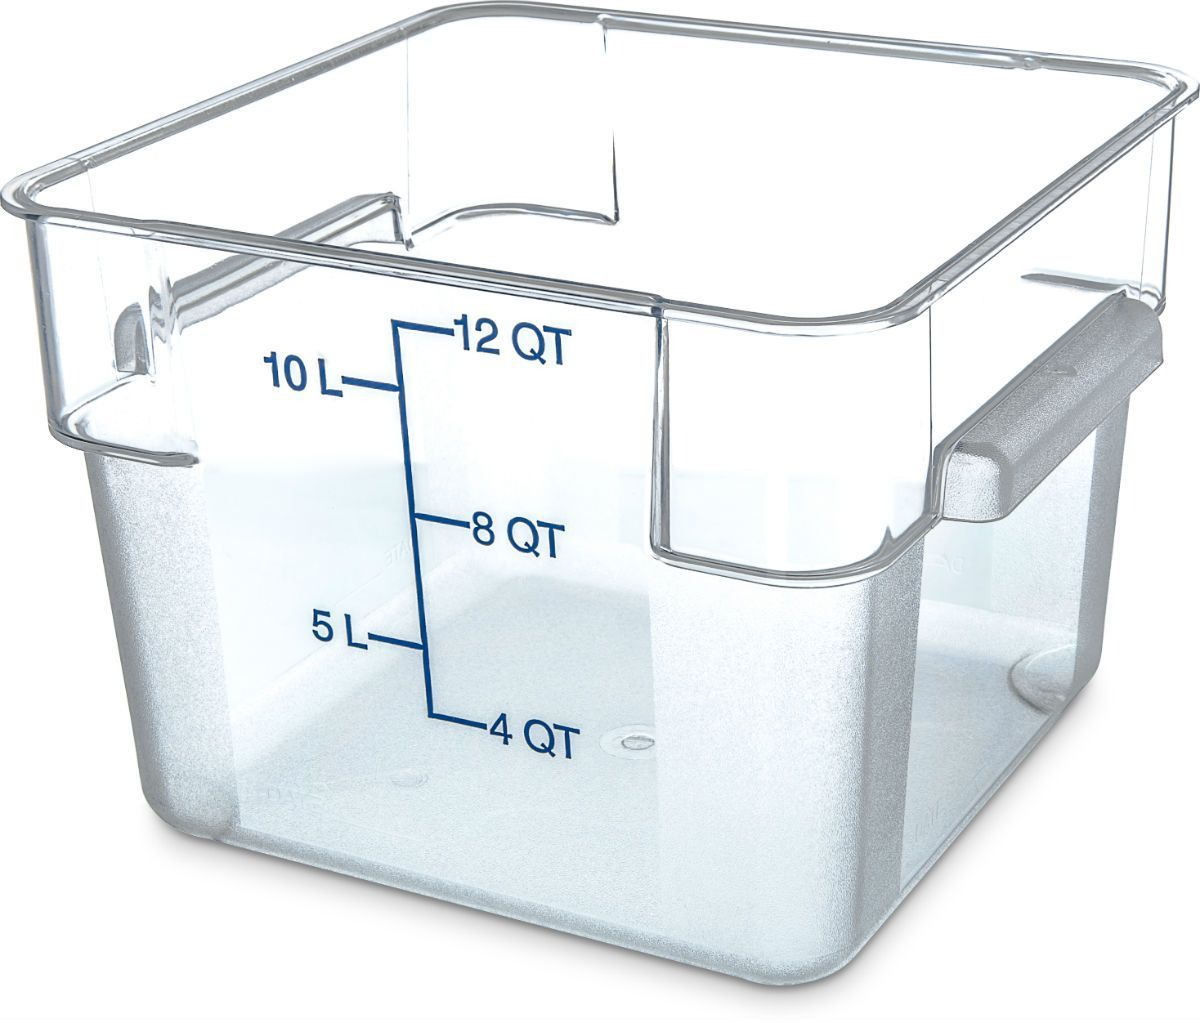 Carlisle 10724 07 12 Qt Clear Square Food Storage Container Storage Containers Carlisle And Food Storage